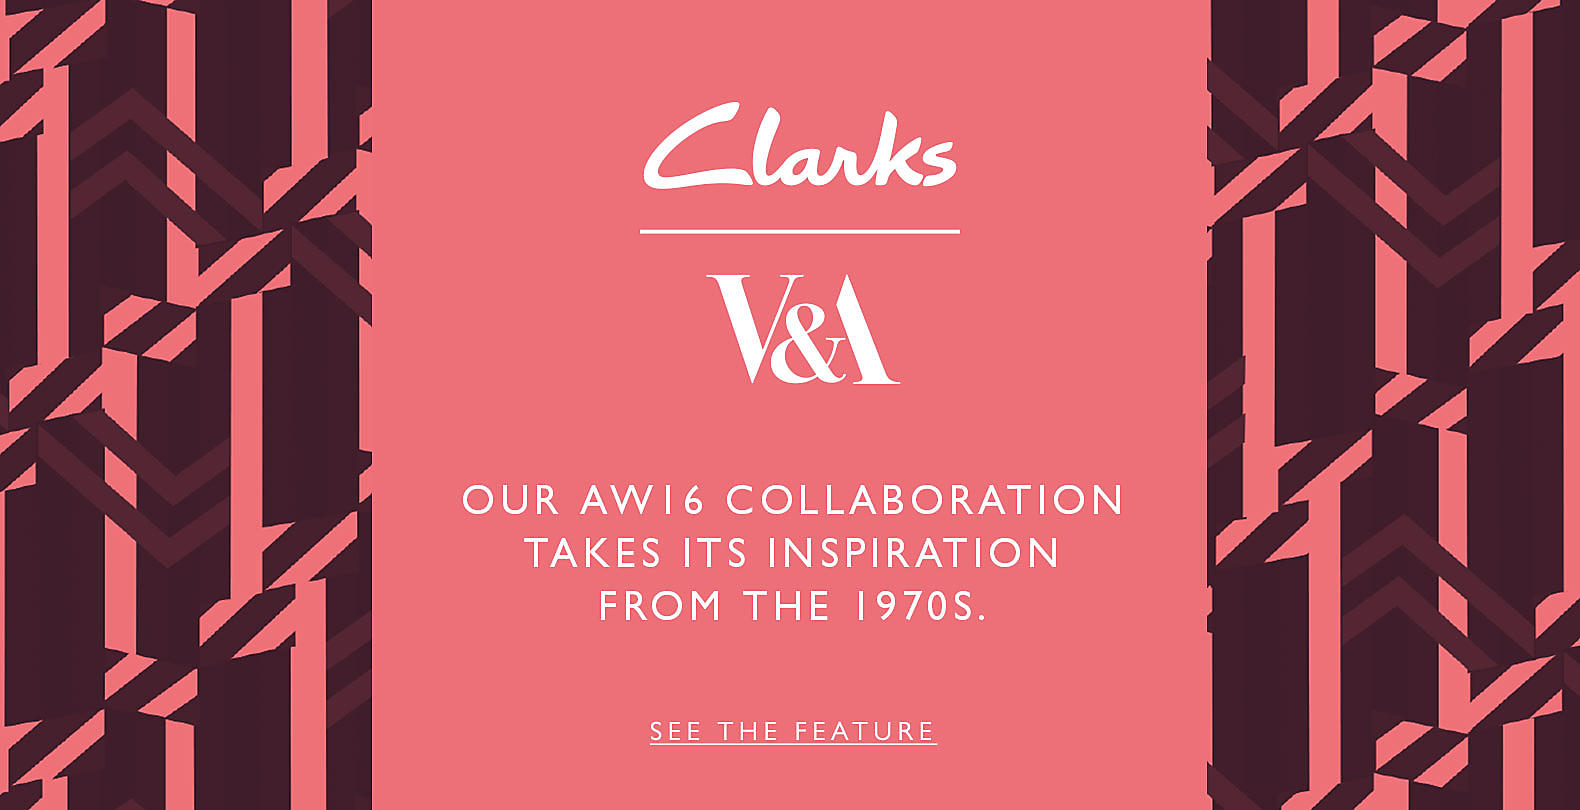 Shop Clarks V&A Collection!